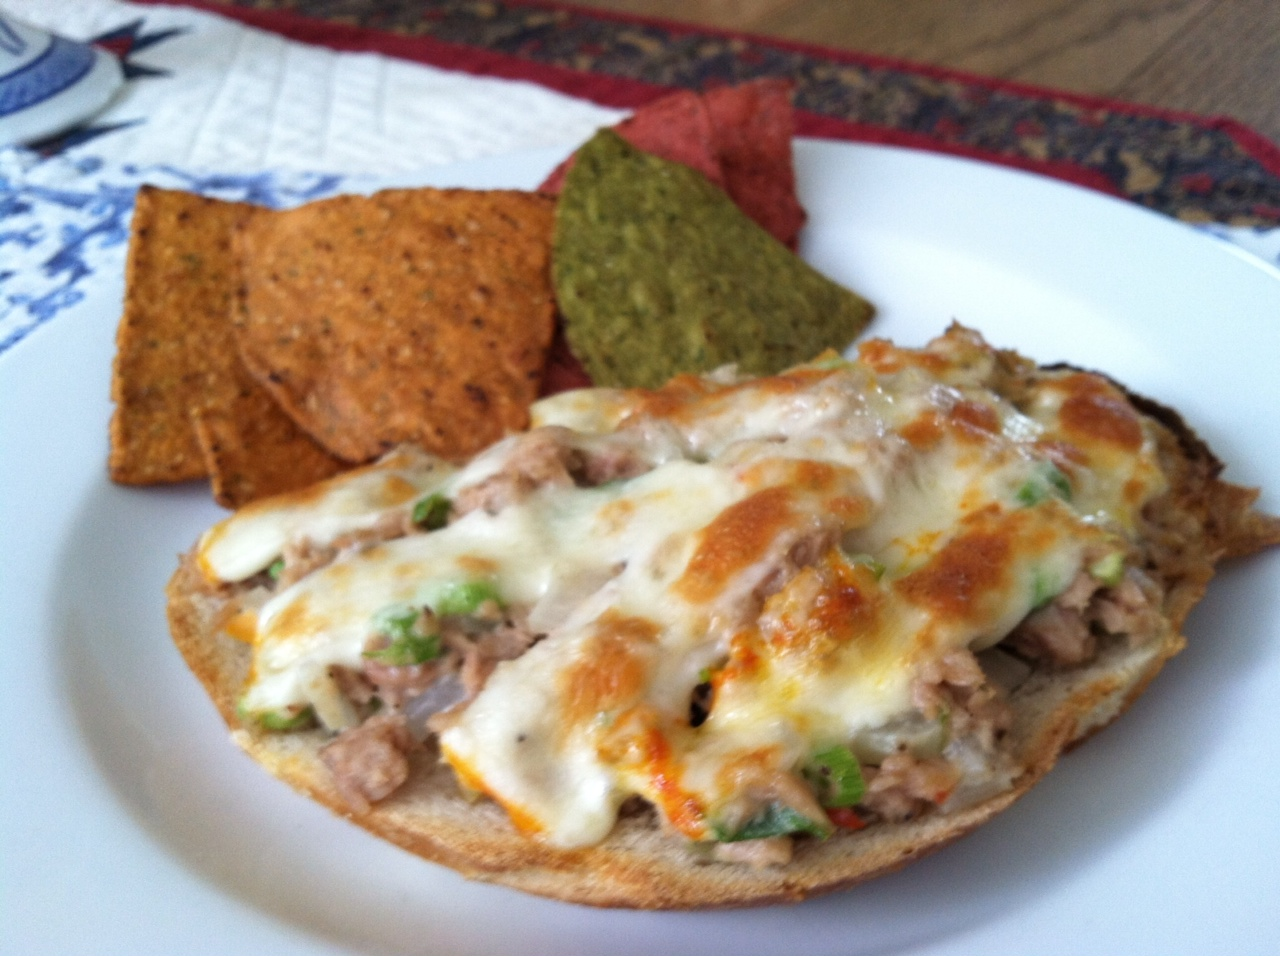 SourdoughNative: Skinny Tuna Melt